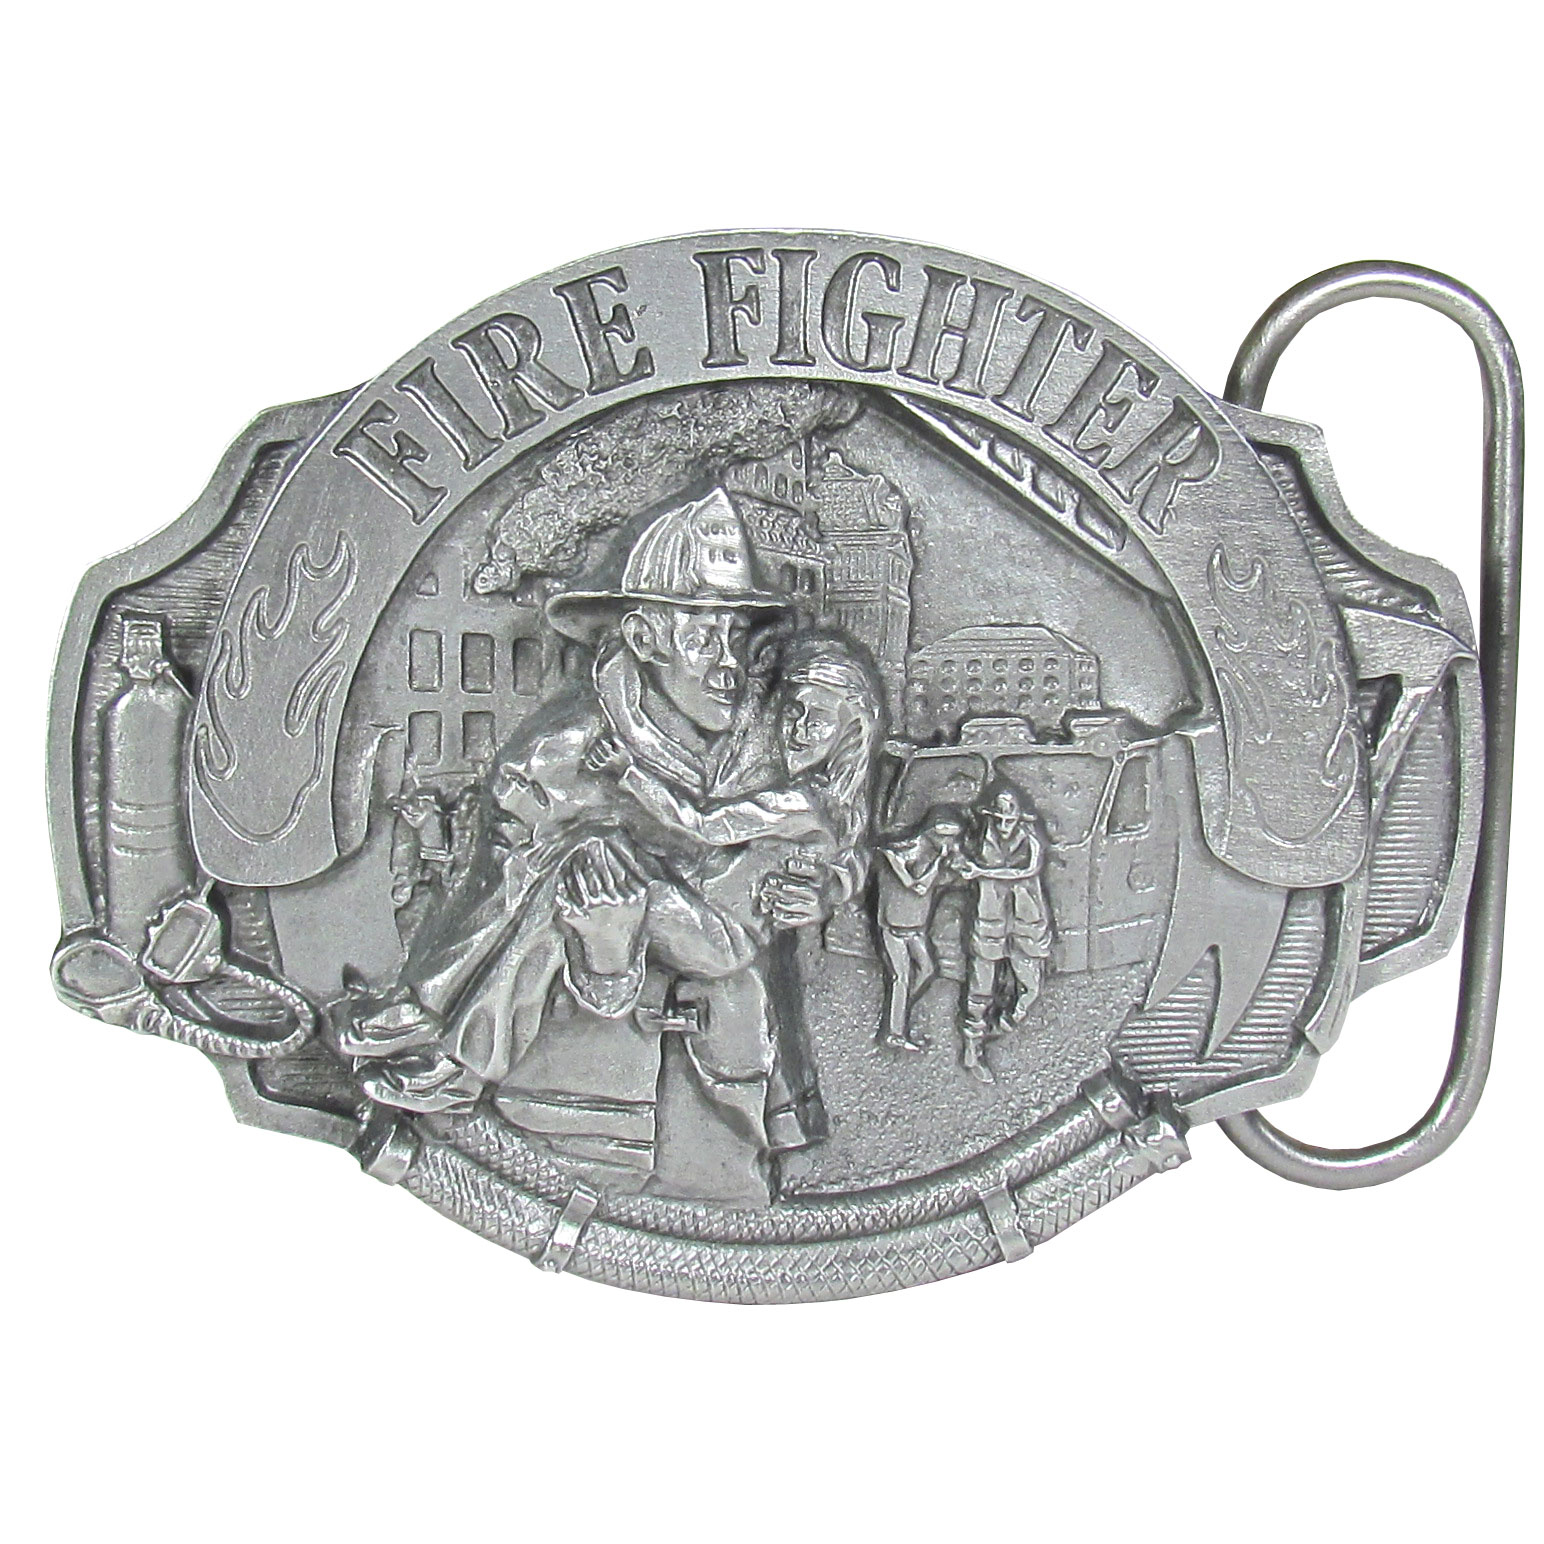 Fire Fighter  Antiqued Belt Buckle - Finely sculpted and intricately designed belt buckle. Our unique designs often become collector's items.